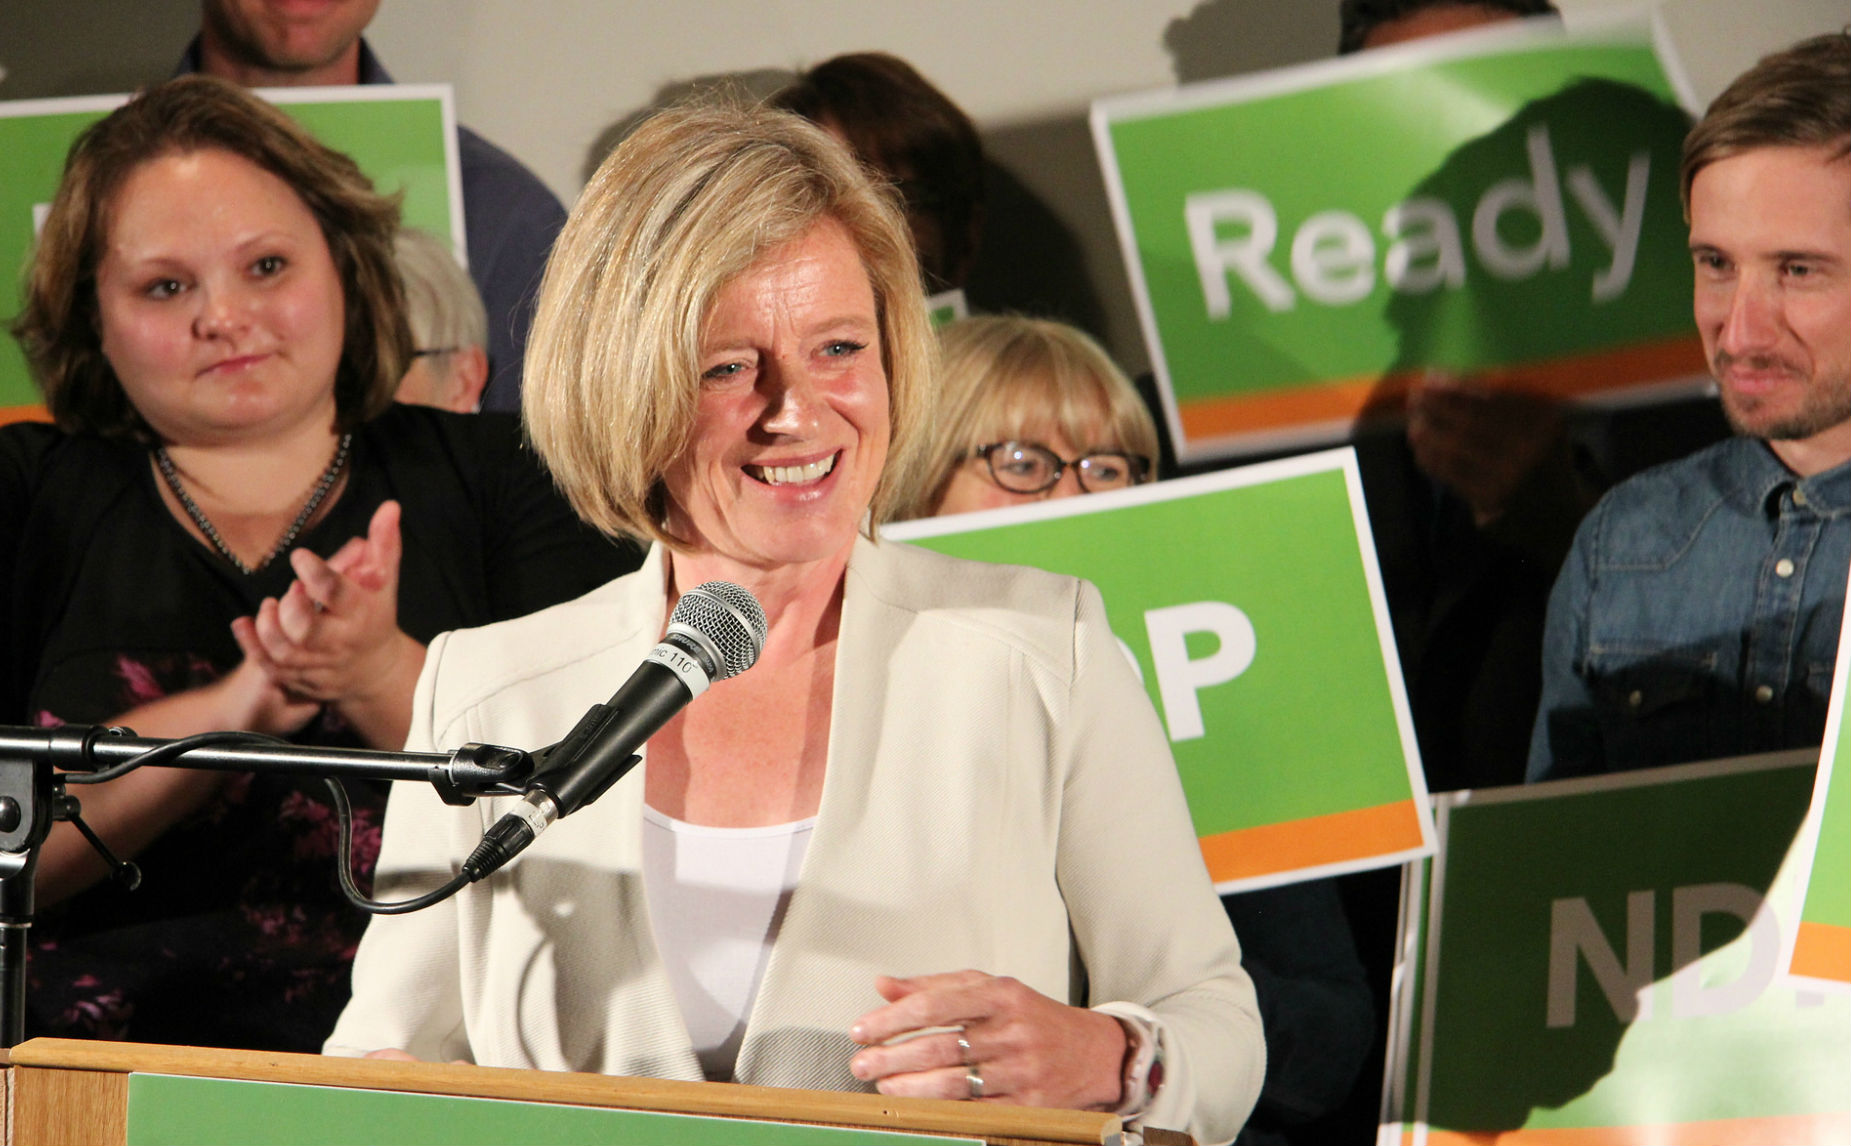 Alberta more progressive than you think, survey finds